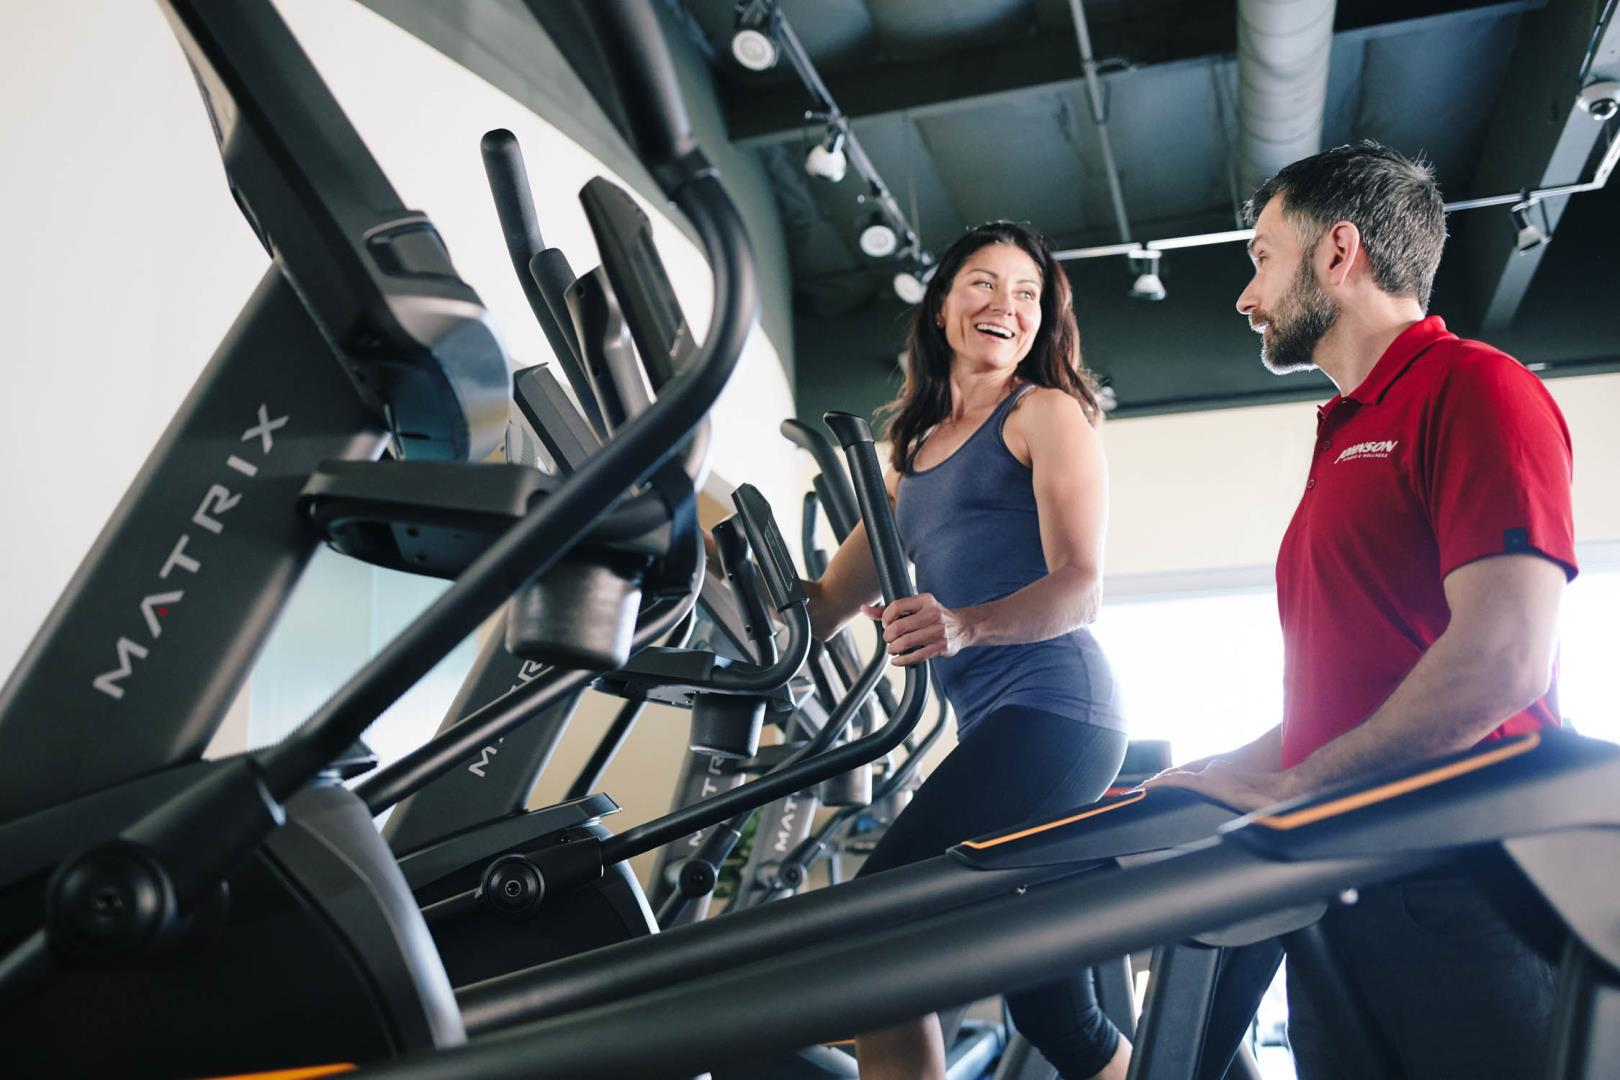 Johnson Fitness & Wellness - Overland Park, KS